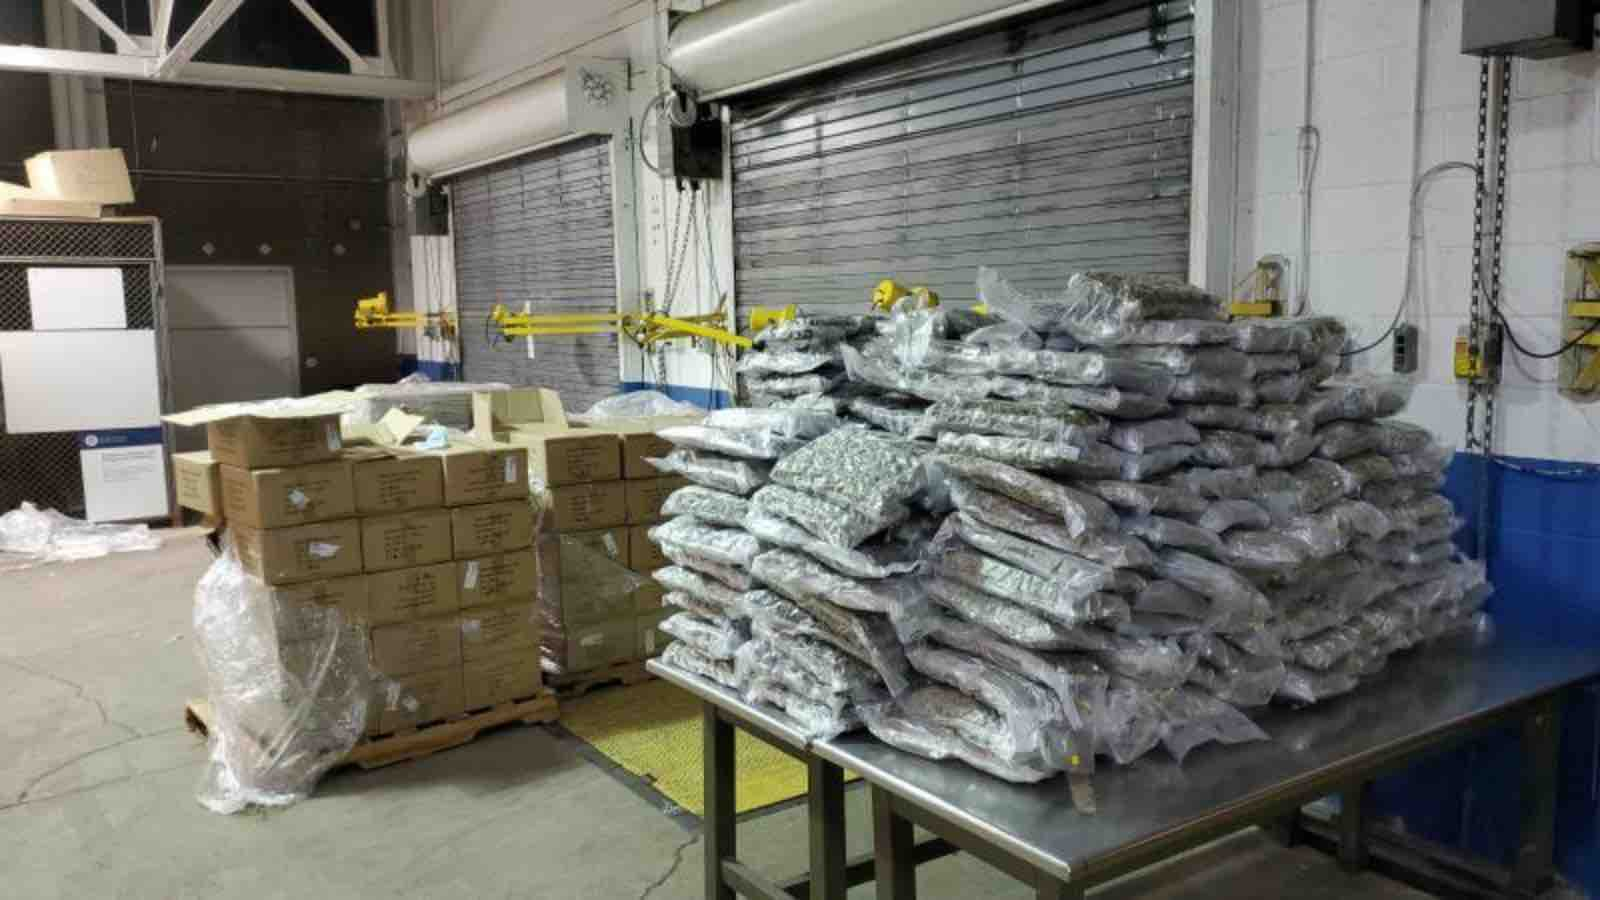 US customs seizes another 900 pounds of cannabis at Canadian border